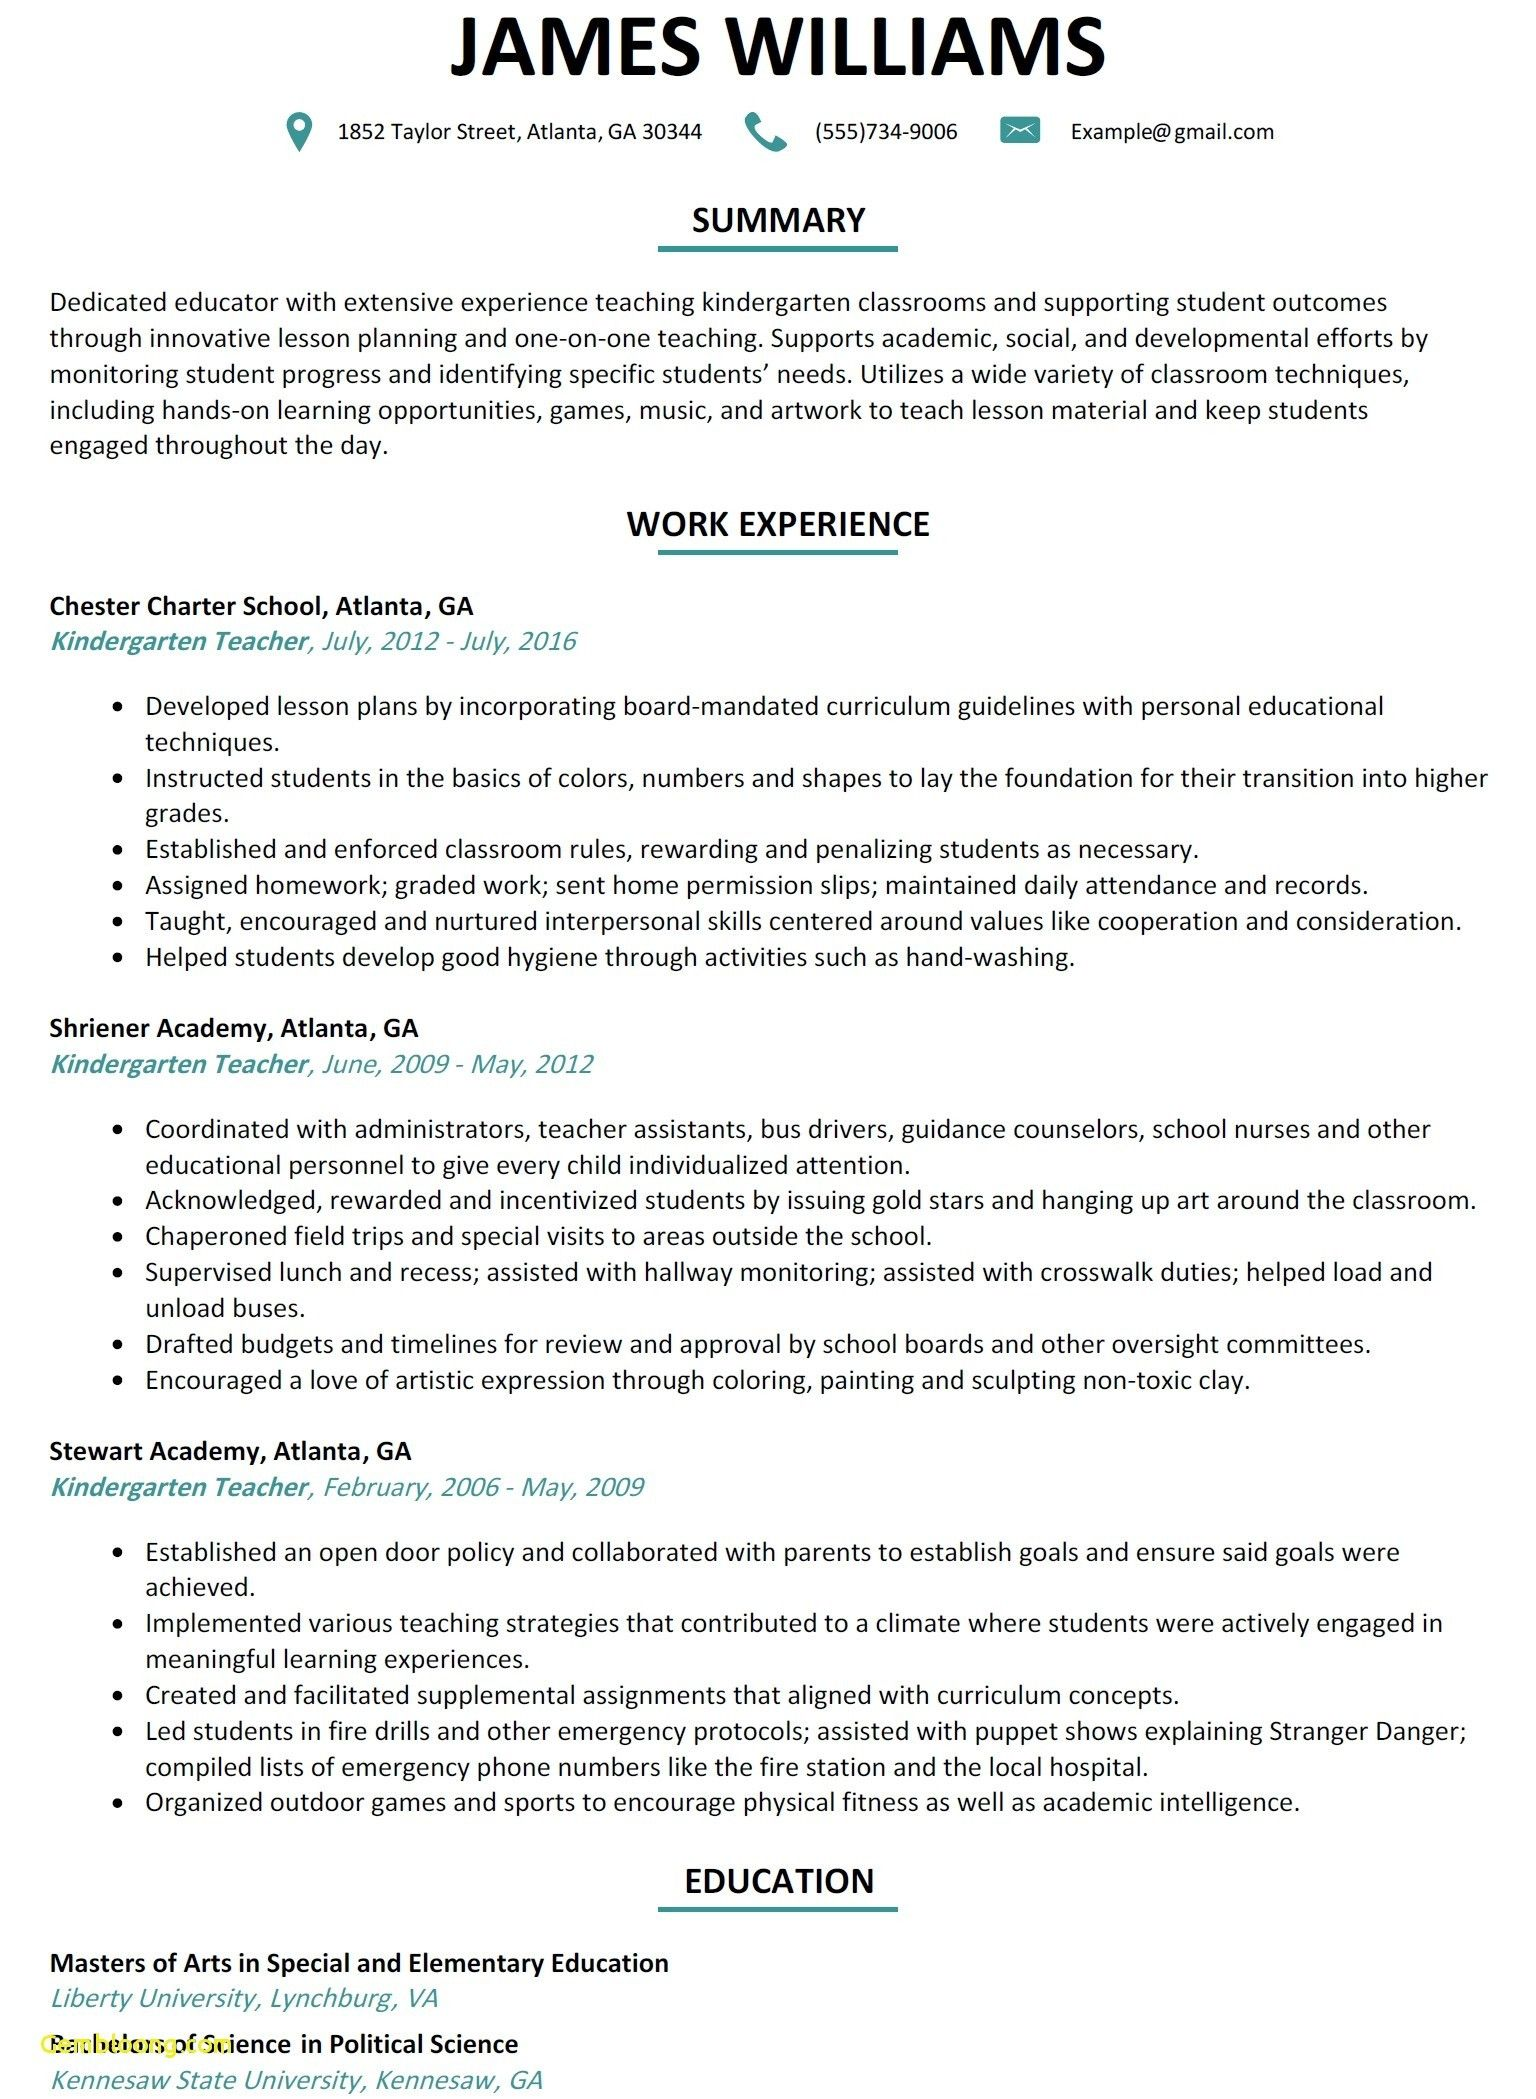 Resume Format Kindergarten Teacher Resume Templates Teaching Resume Examples Teacher Resume Examples Teacher Resume